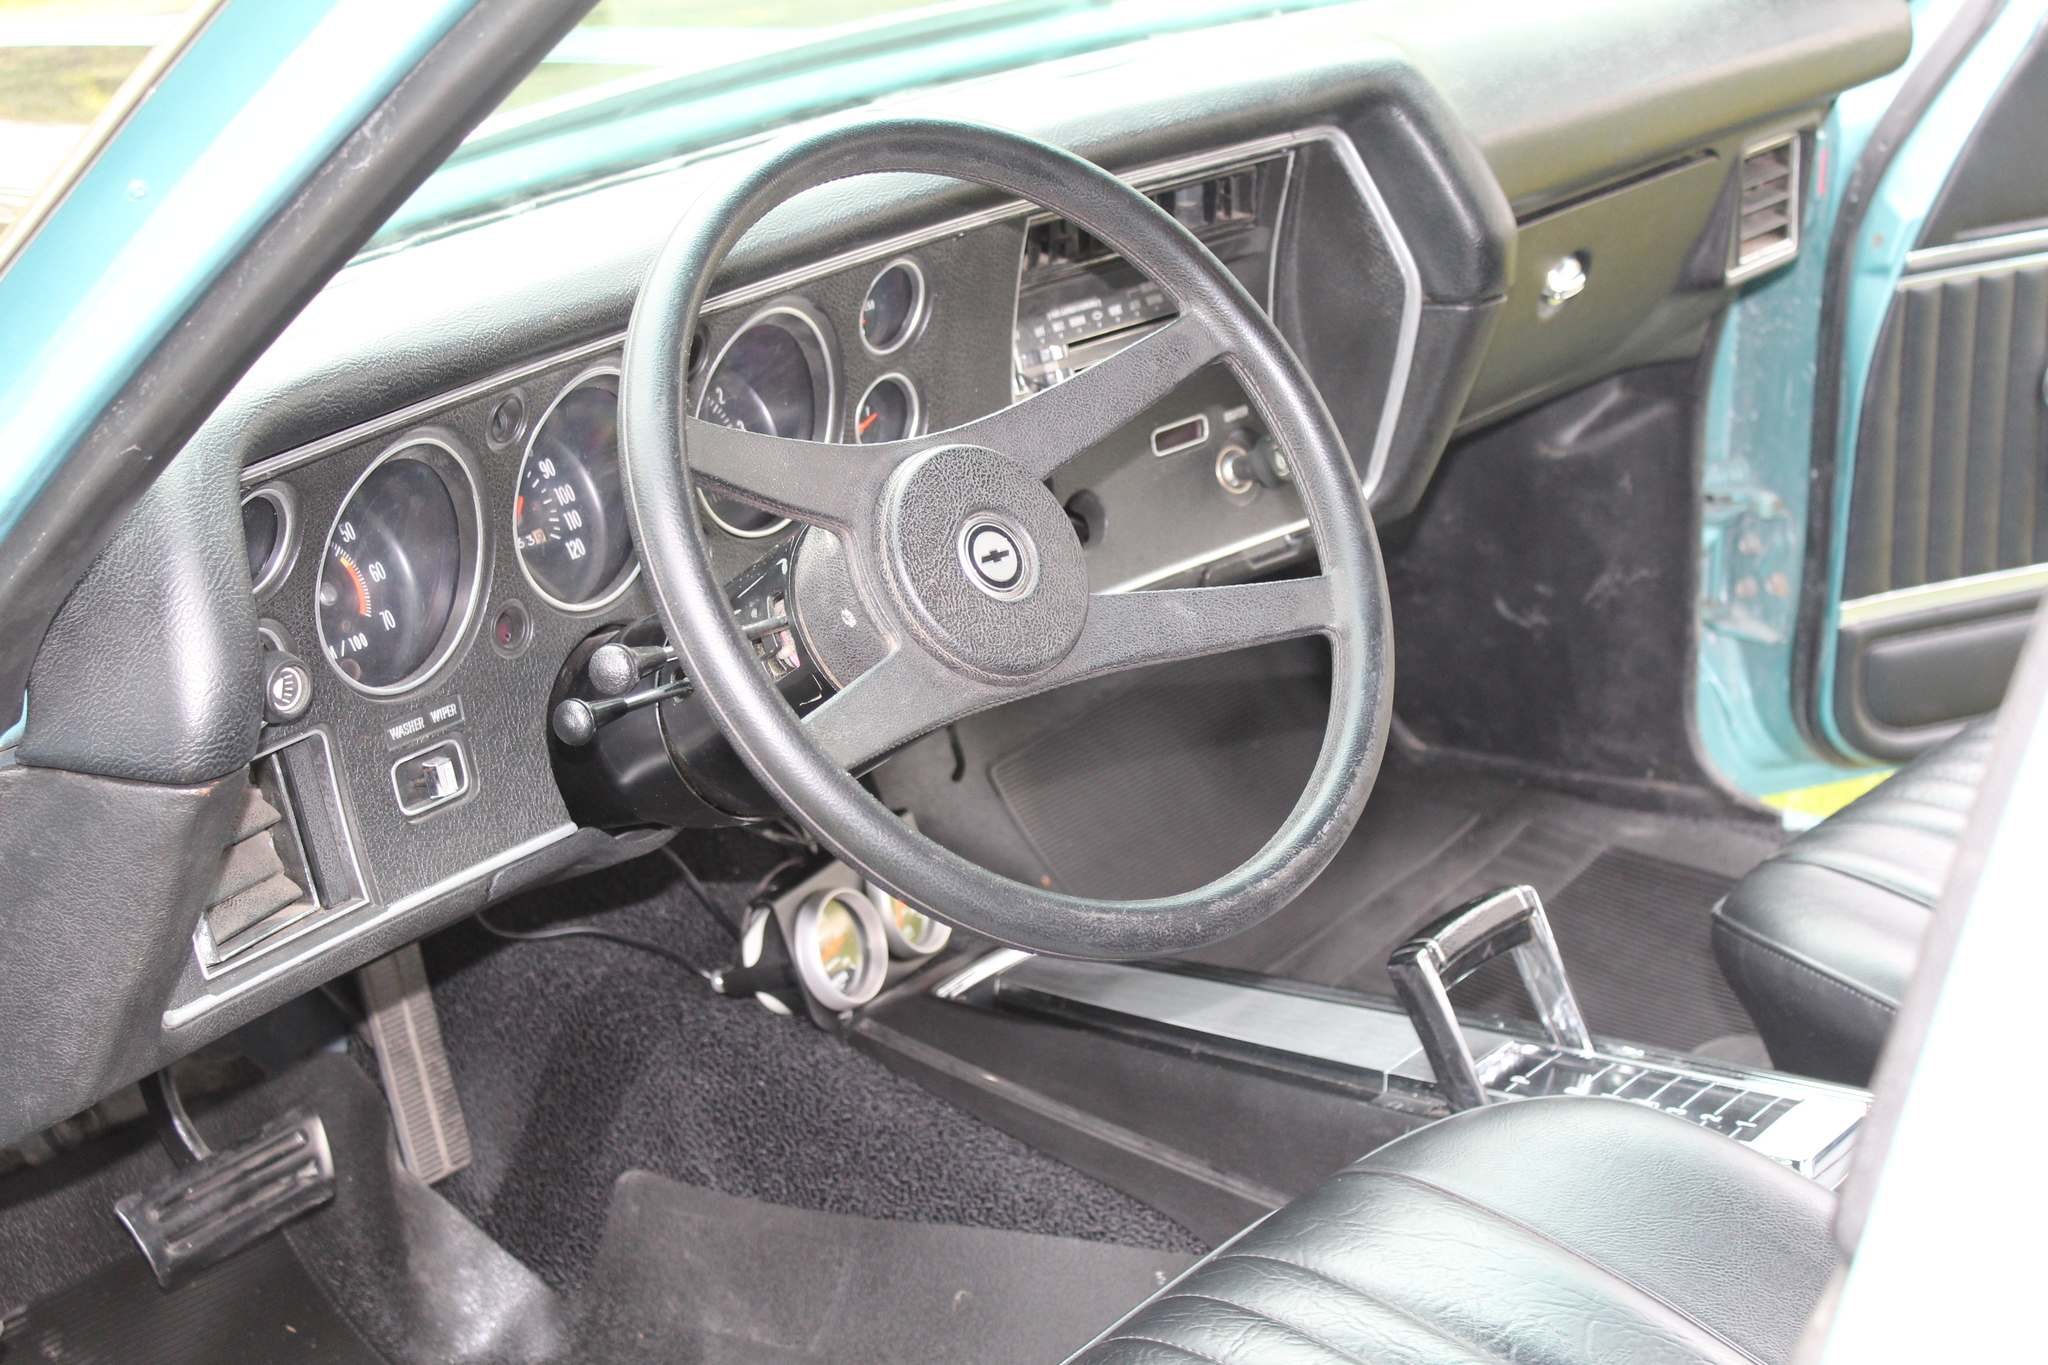 Upgrades to the car's interior include new vinyl door panels, carpet and oil and temperature gauges.